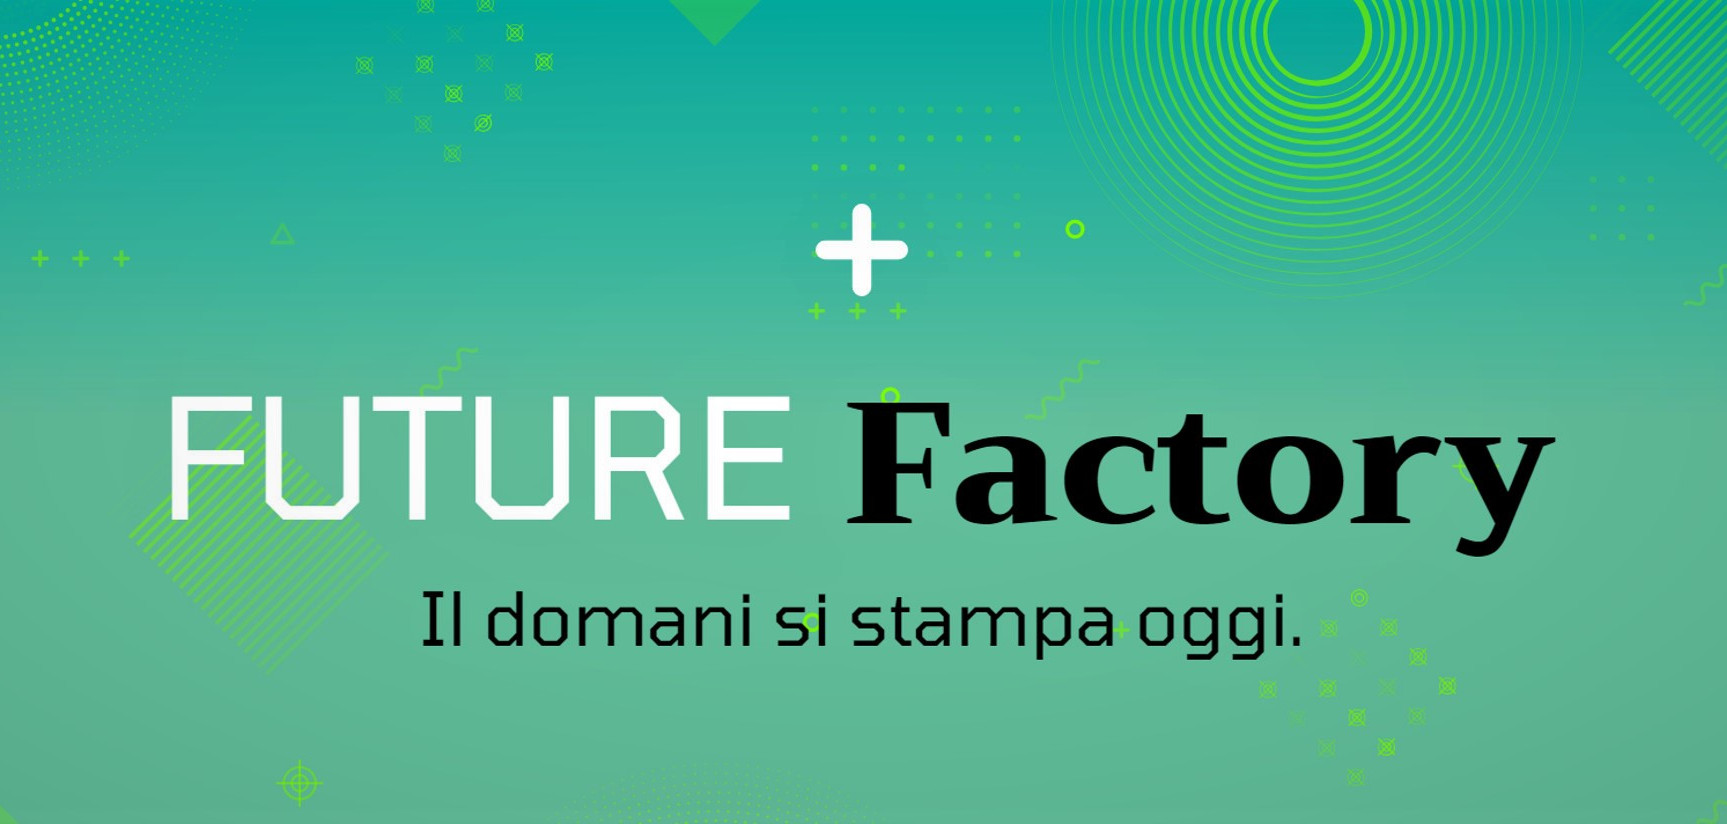 Future Factory alla Print4All Conference